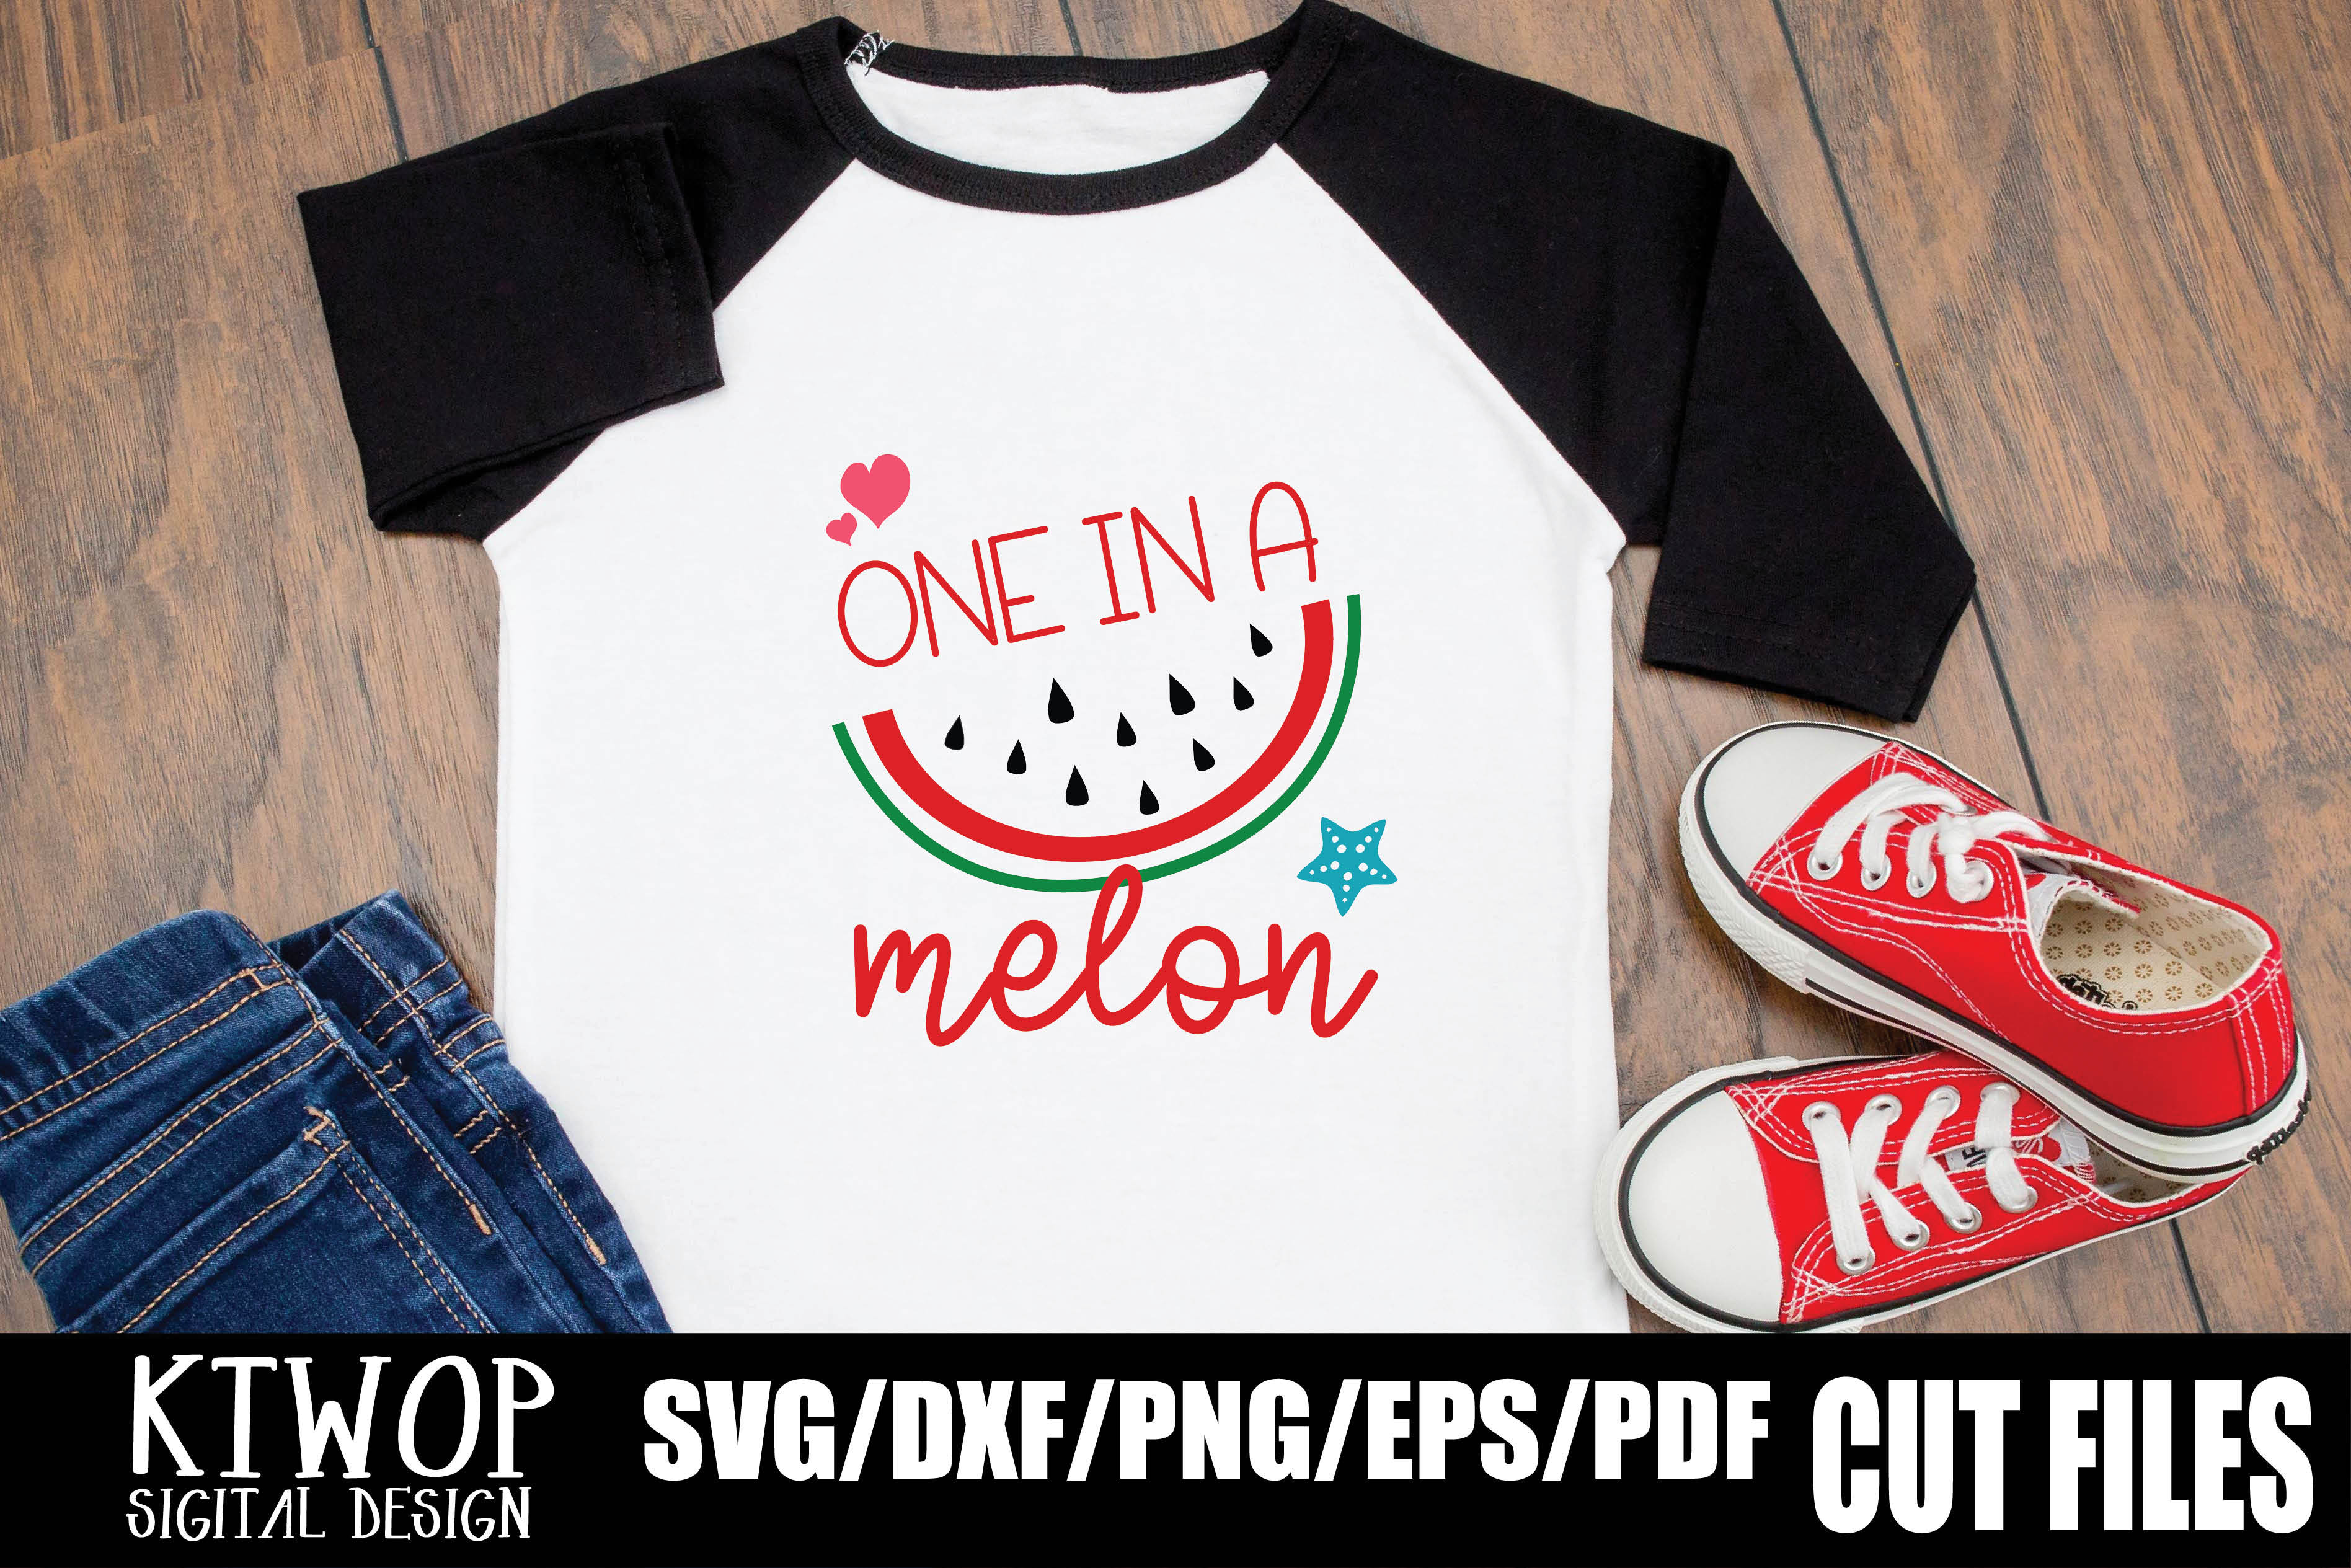 Download Free One In A Melon Graphic By Ktwop Creative Fabrica for Cricut Explore, Silhouette and other cutting machines.